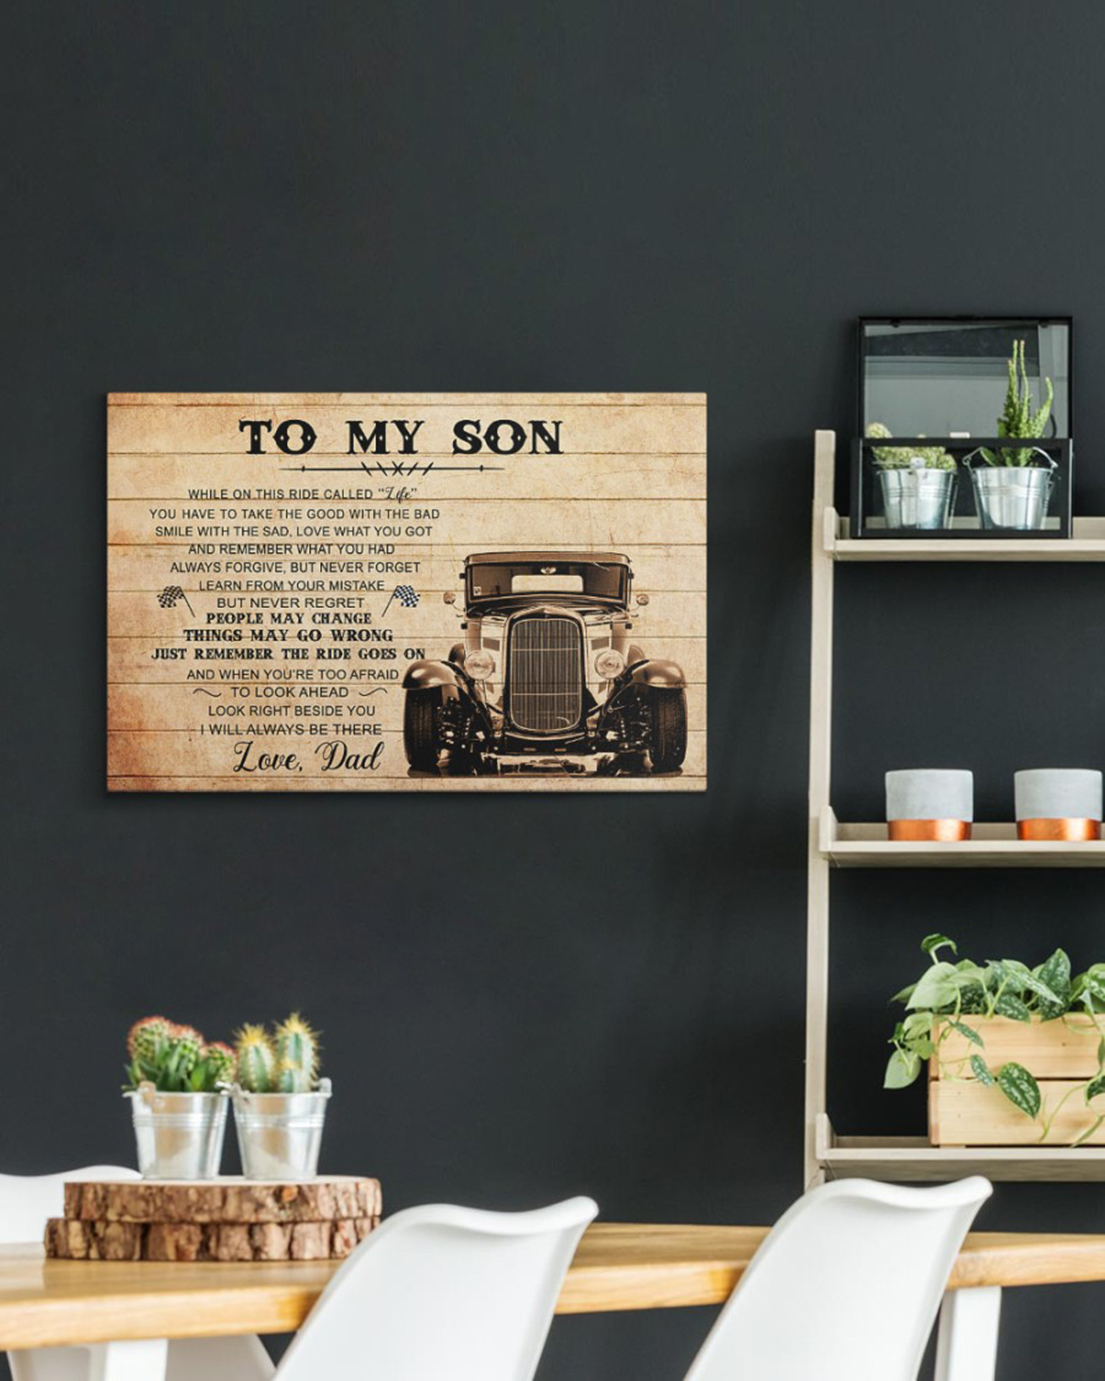 To my son love dad hot rod canvas and poster - Picture 1